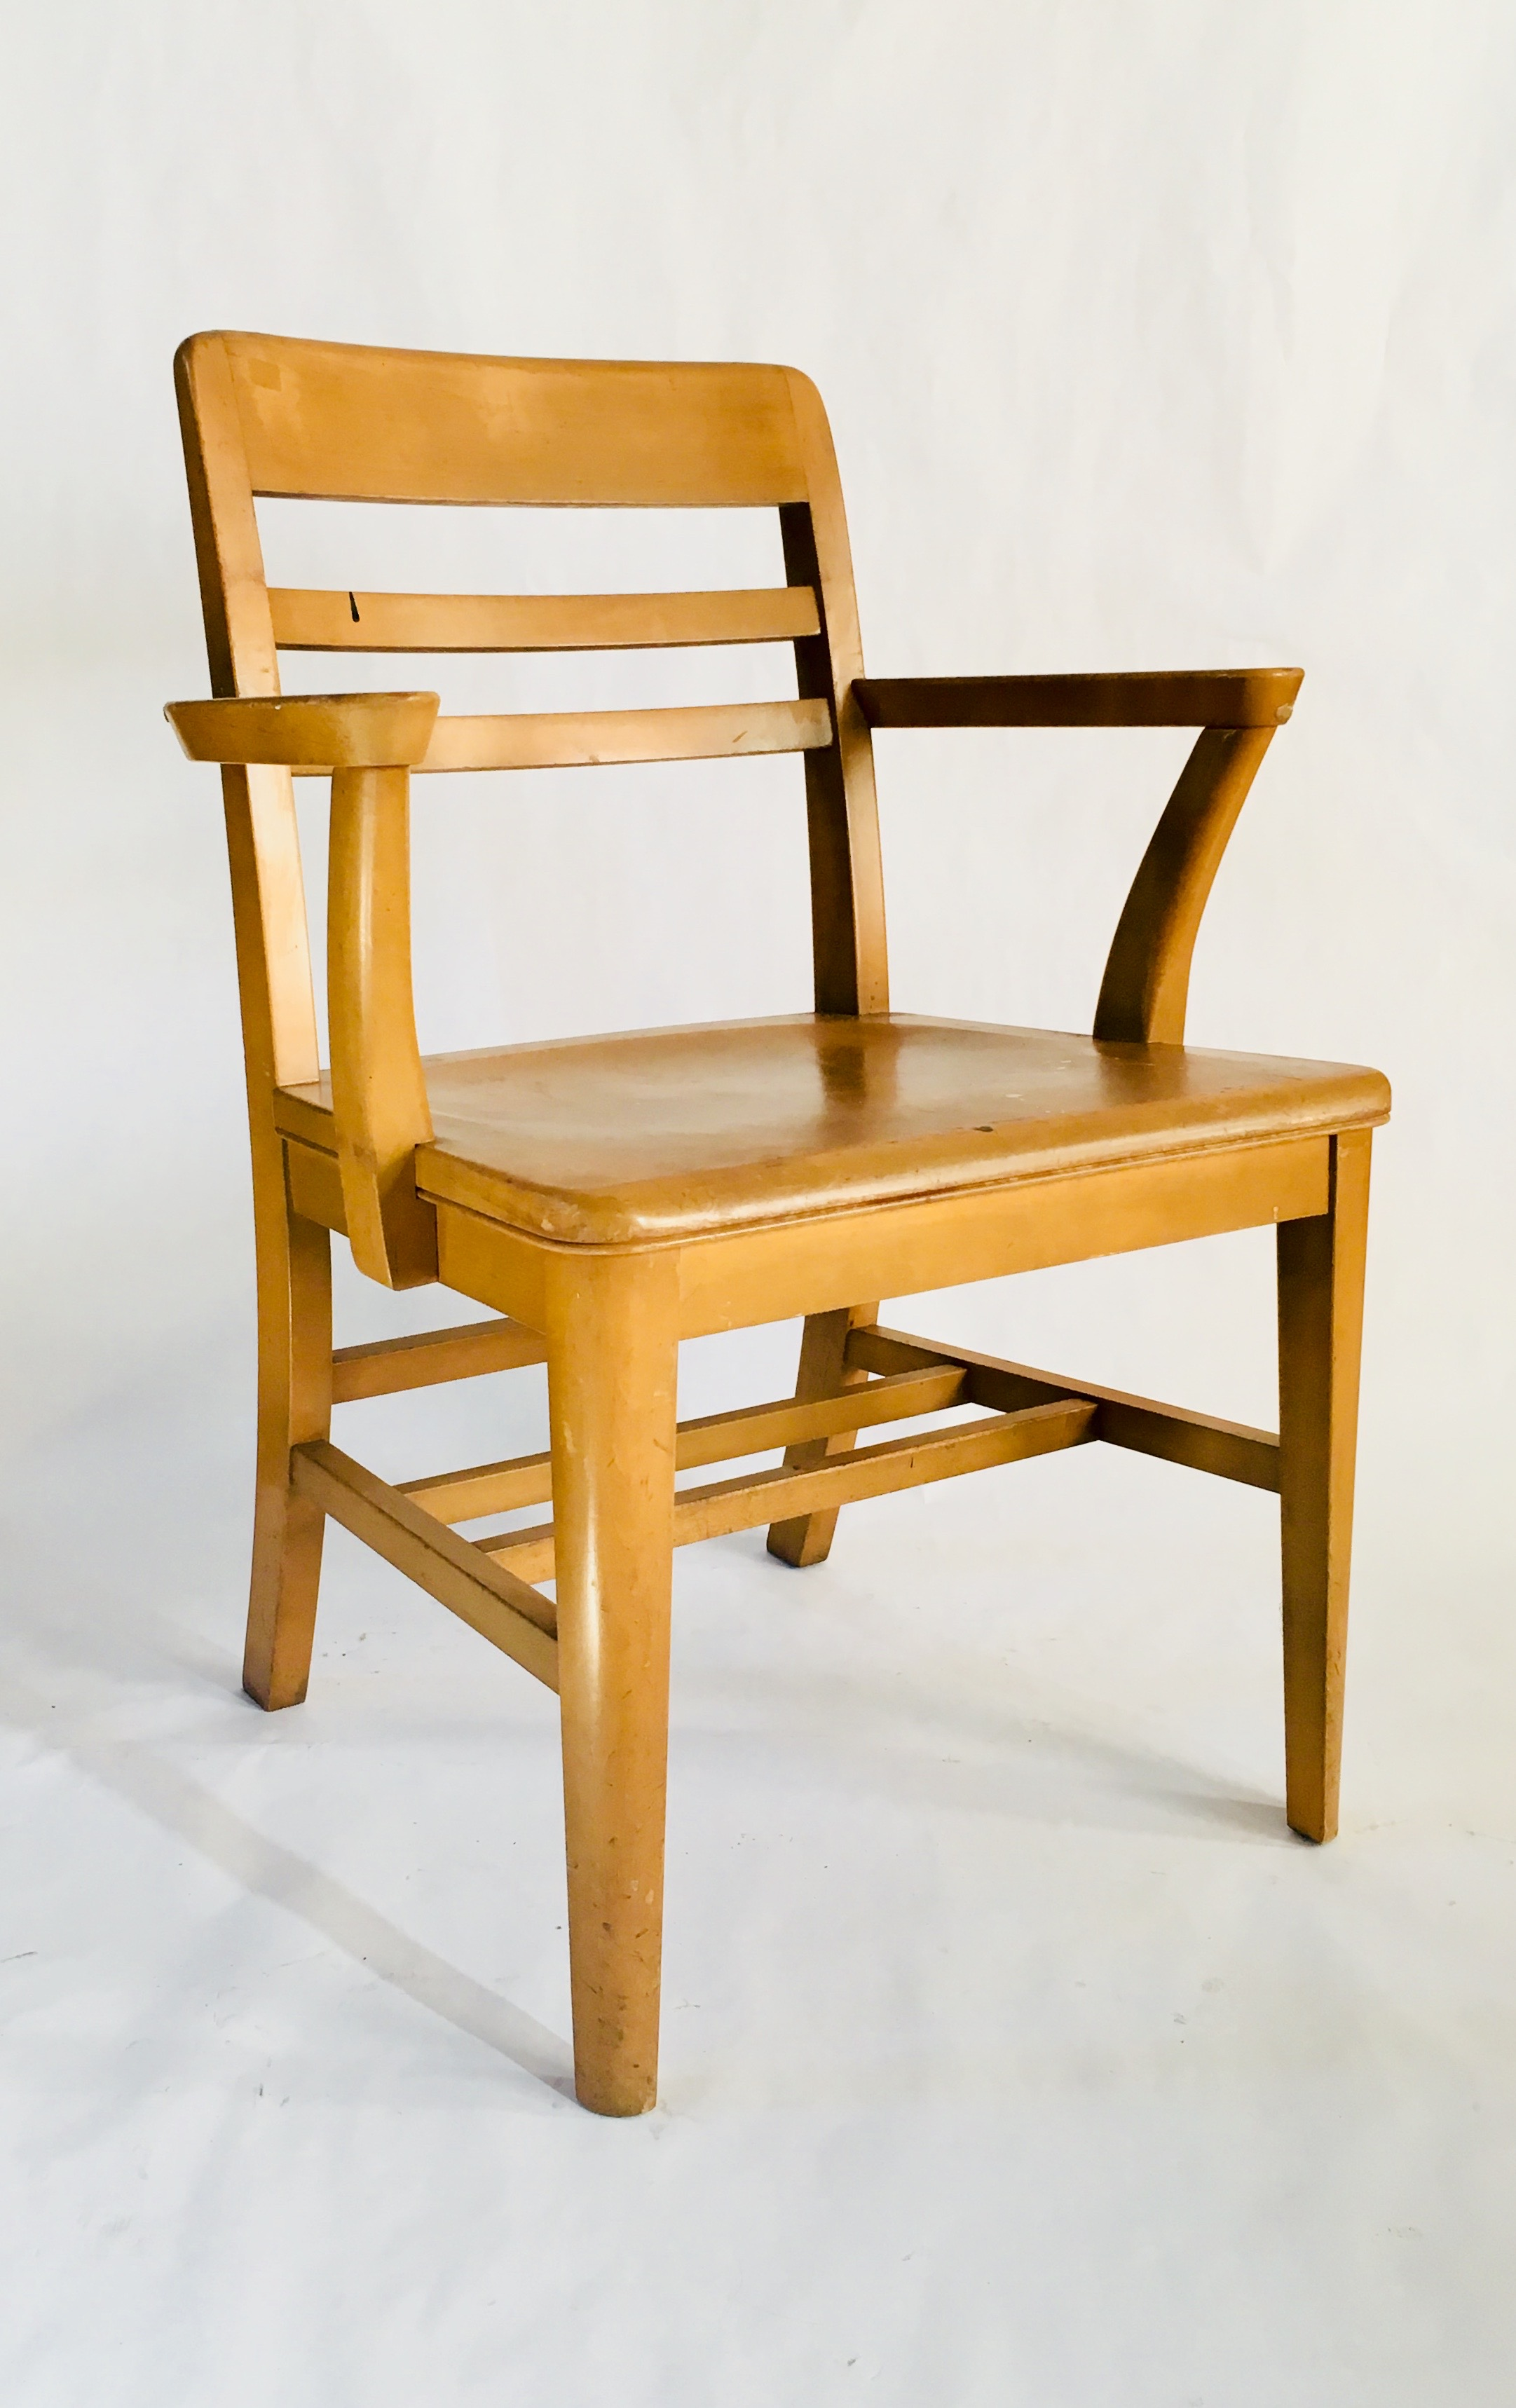 Vintage Wooden Chairs >> Vintage Wooden Library Chair By Gunlocke Chair Co Kyla Coburn